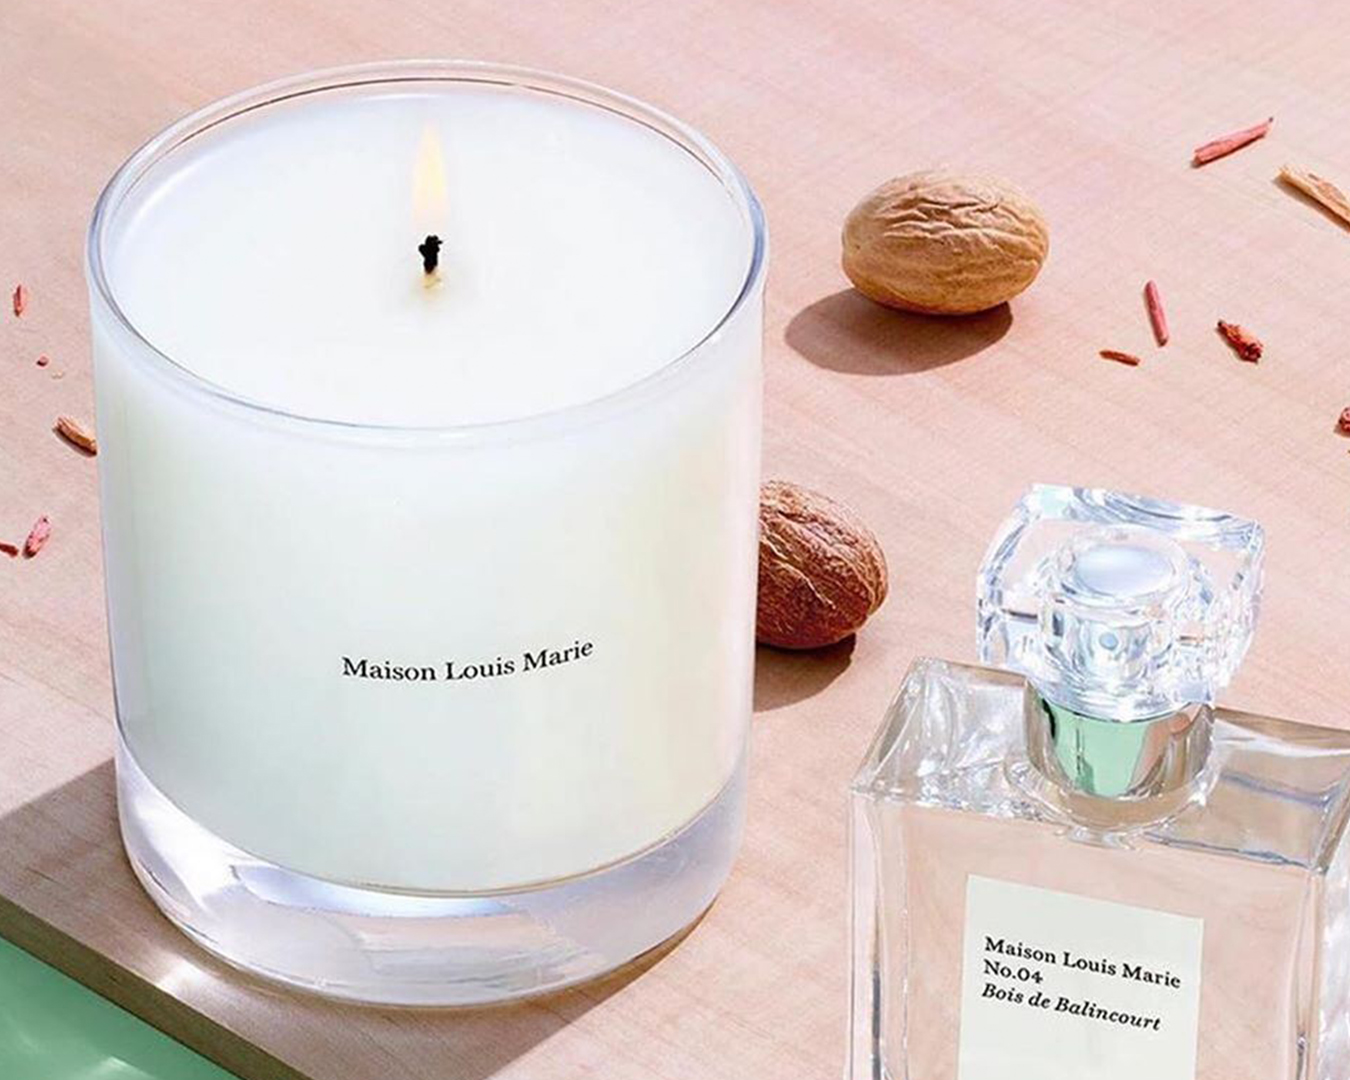 a lit candle sits on a table next to bottle of perfume.